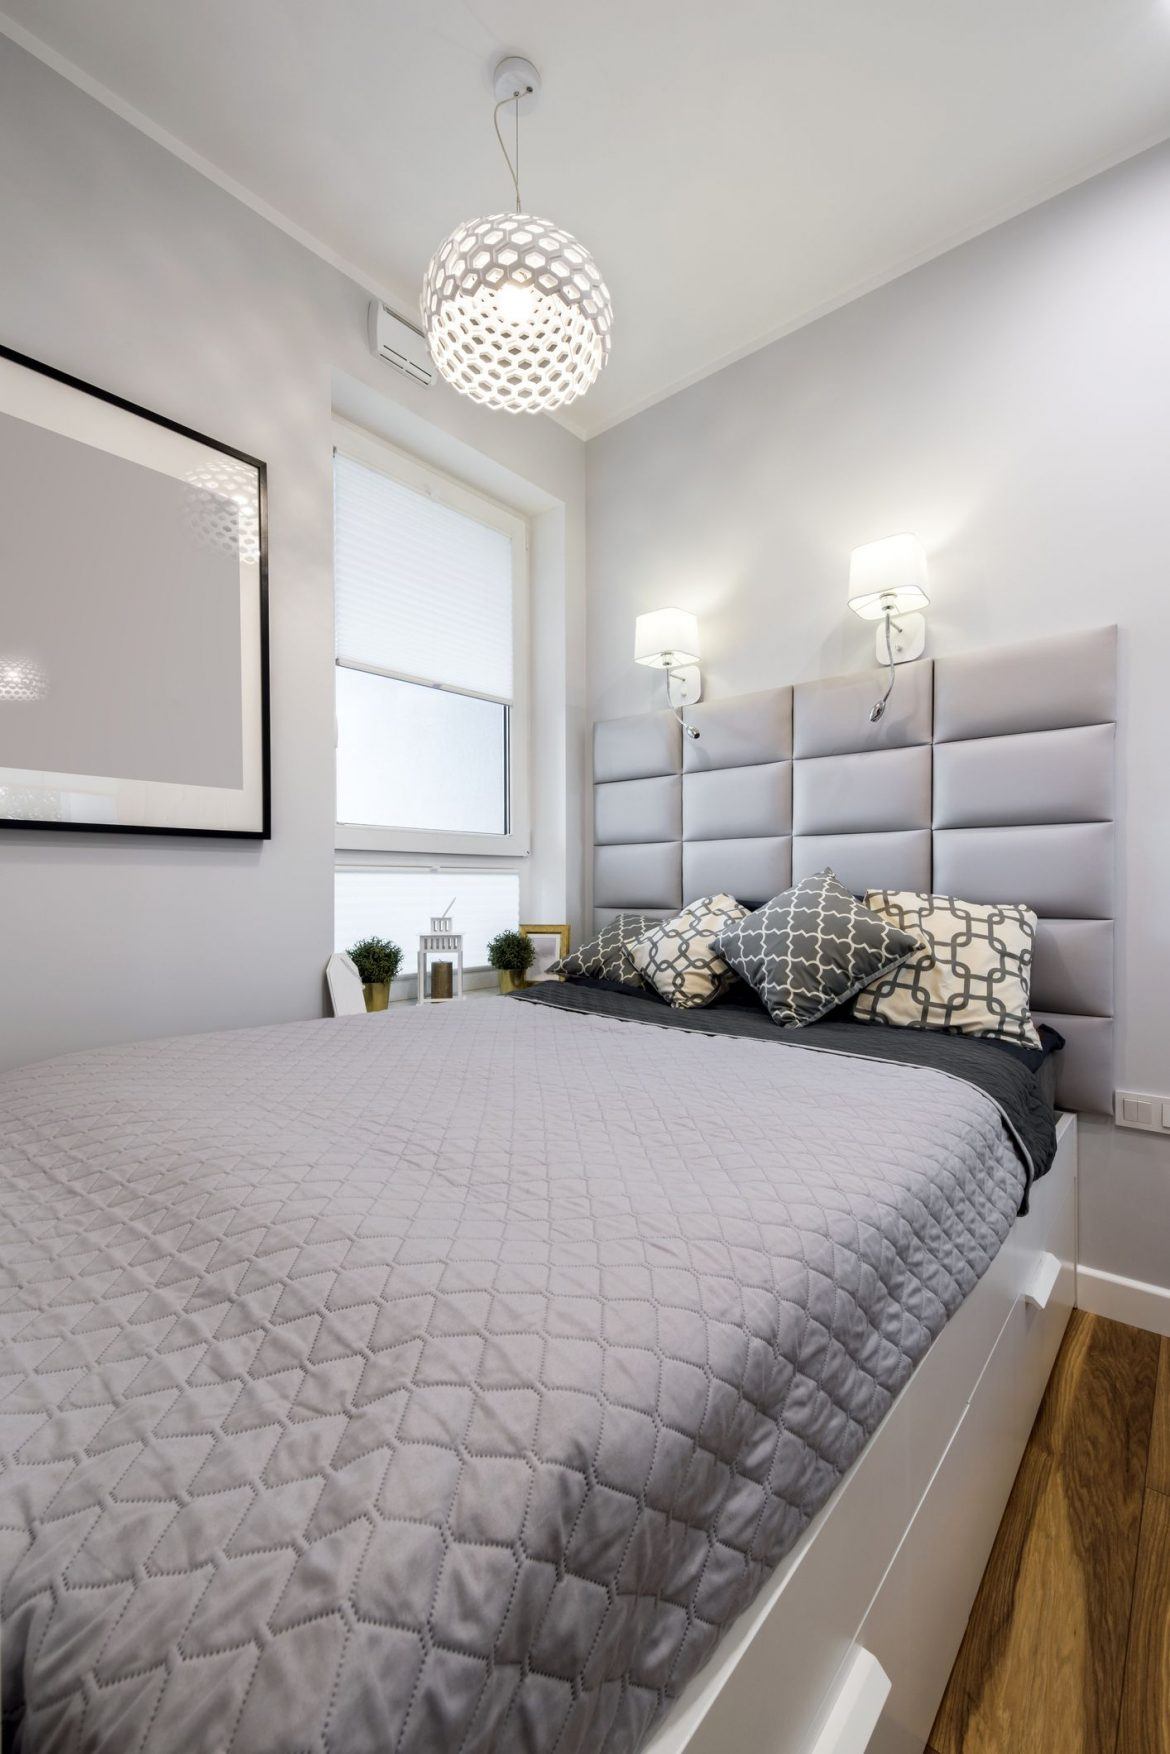 Here You'll Find Small Bedroom Ideas To Make Your Space Feel Bigger Small Bedroom Ideas small bedroom ideas Here You'll Find Small Bedroom Ideas To Make Your Space Feel Bigger Here Youll Find Small Bedroom Ideas To Make Your Space Feel Bigger